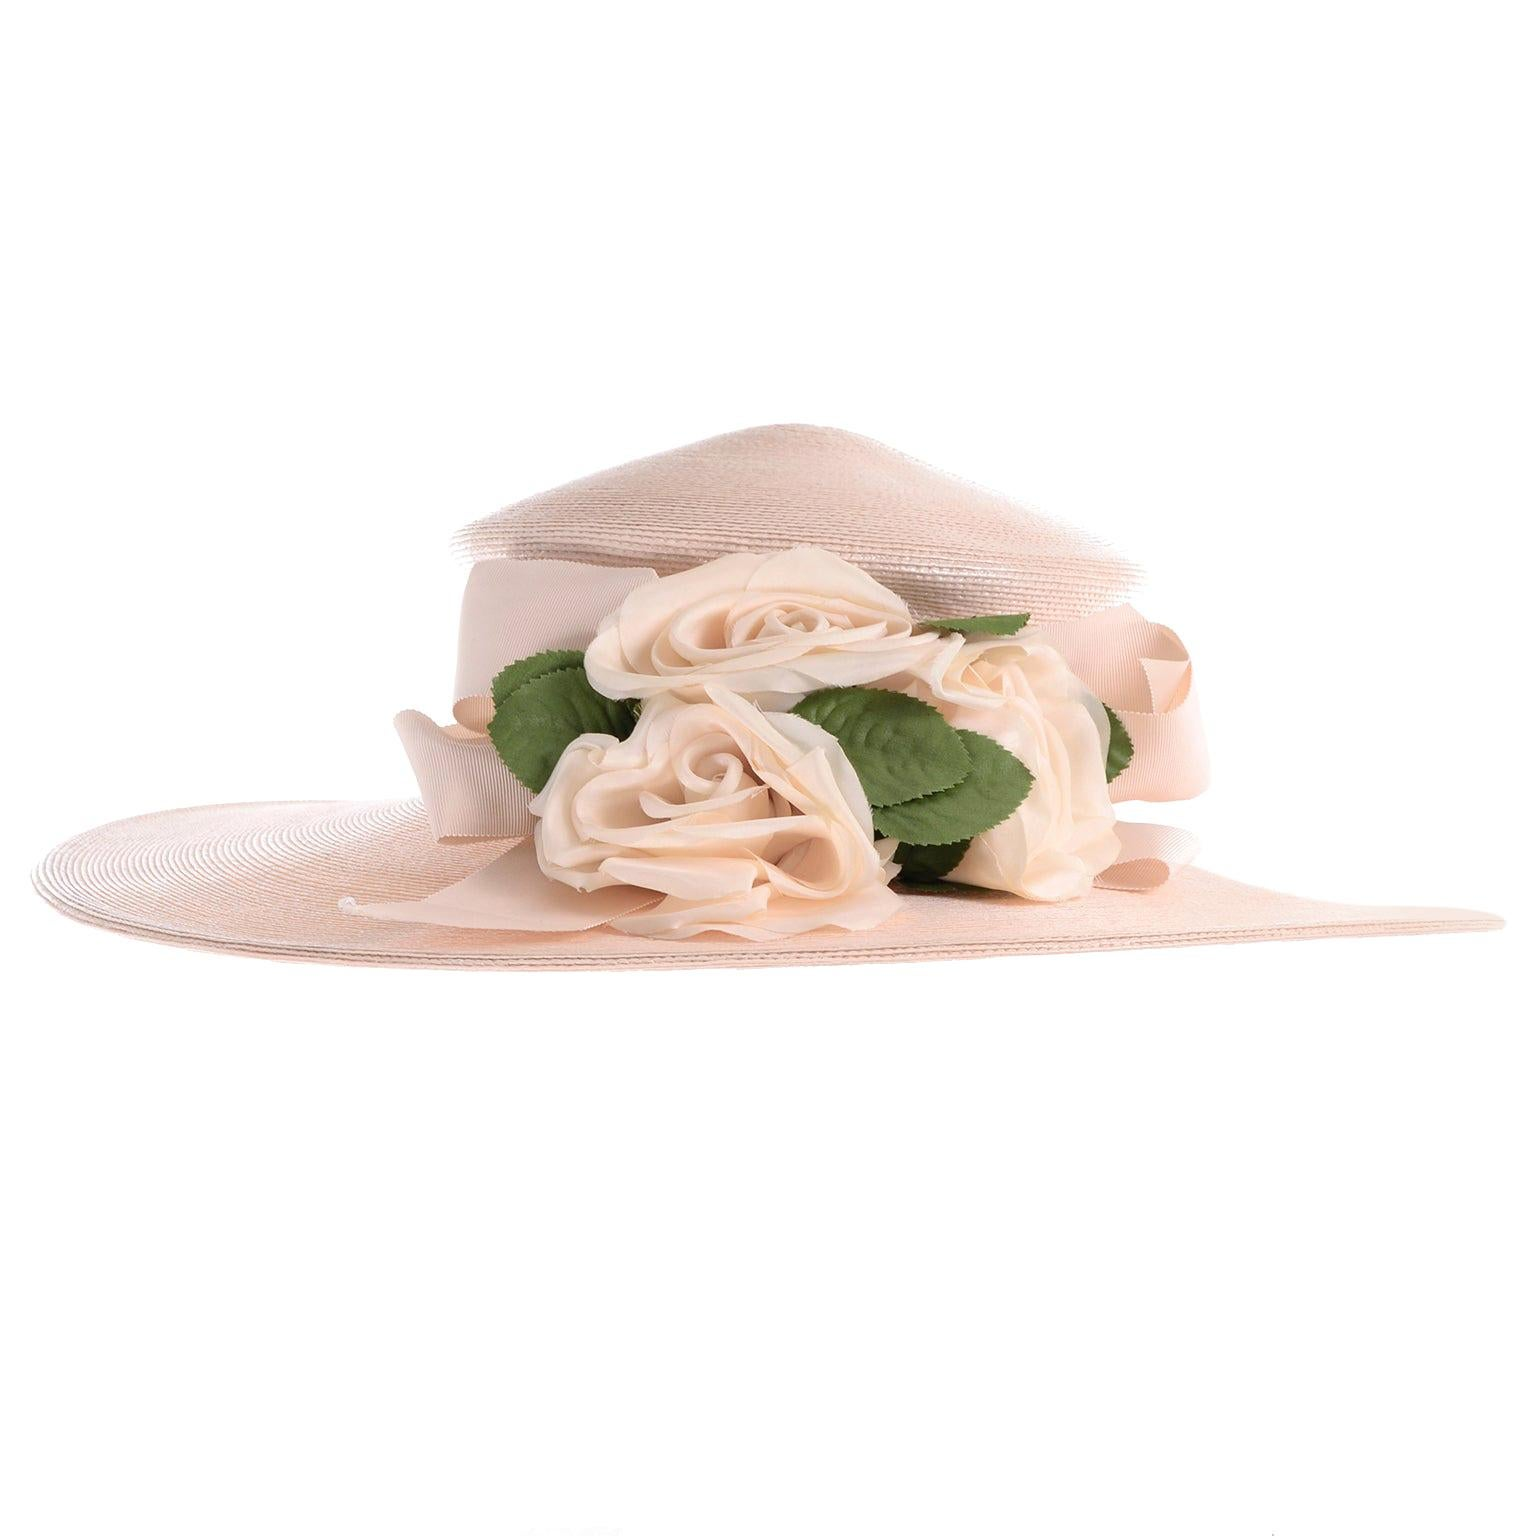 Frank Olive Vintage Cream Straw Hat With Flowers